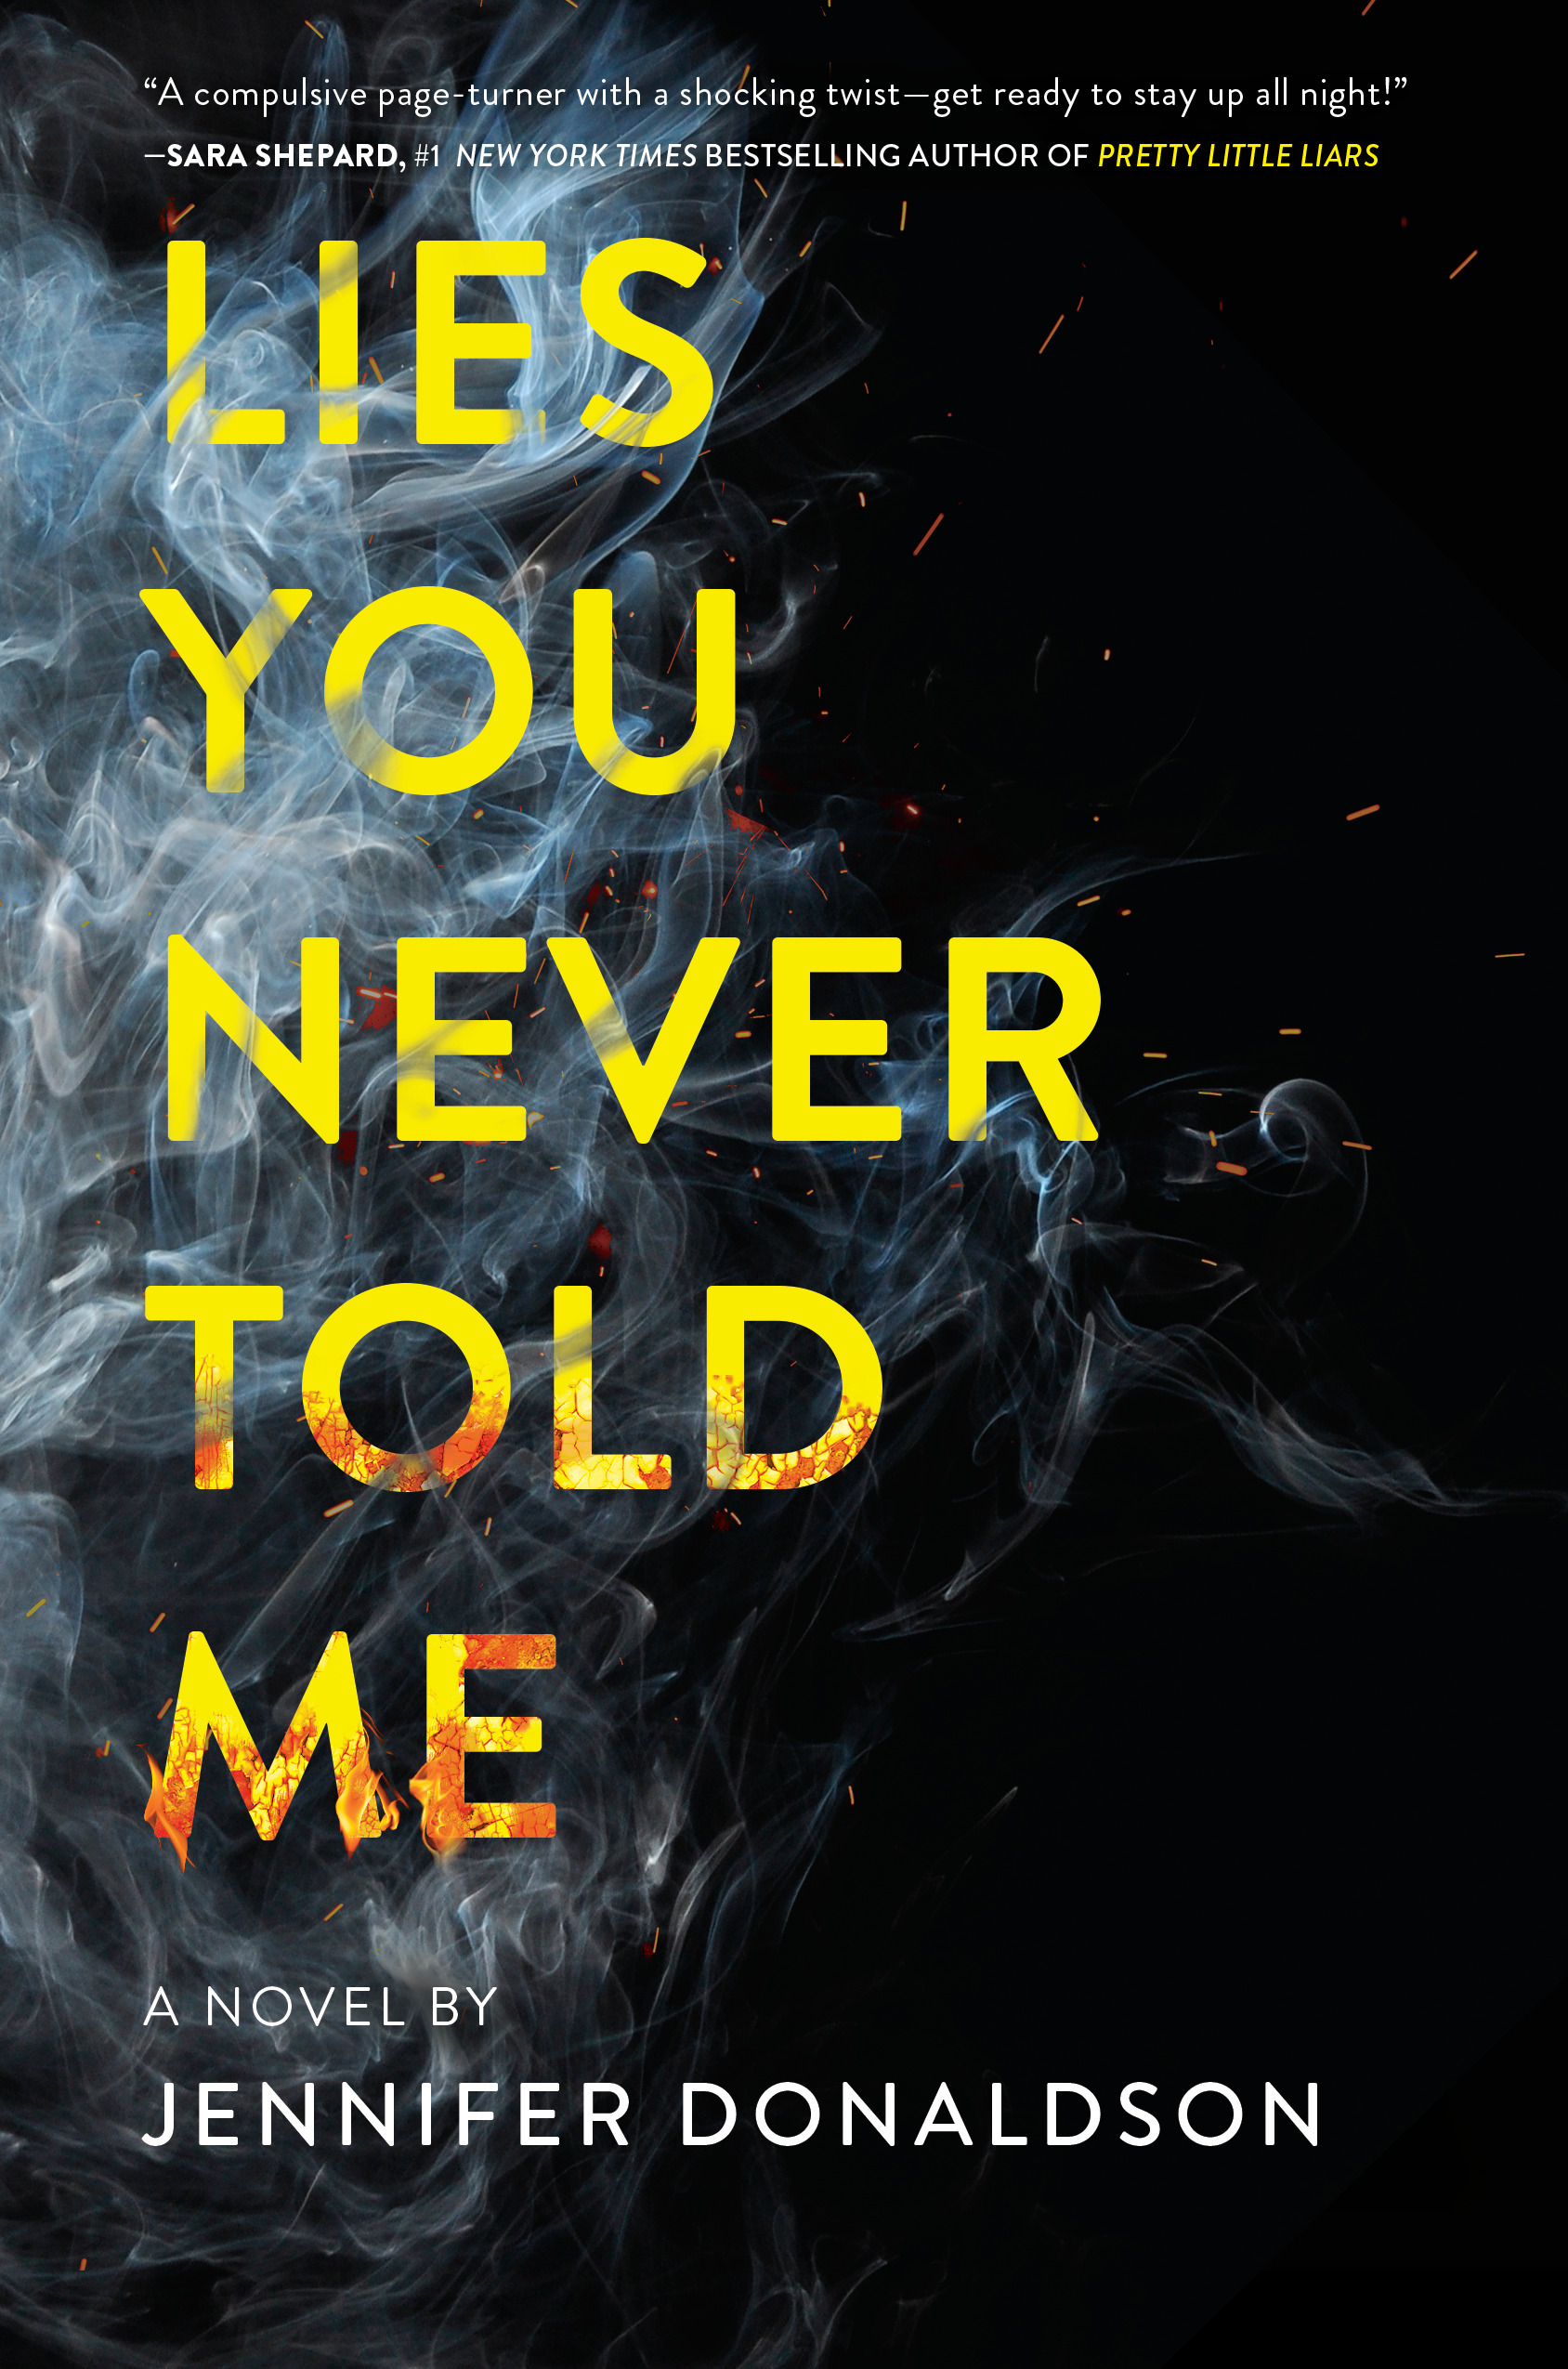 LIES YOU NEVER TOLD ME BOOK COVER